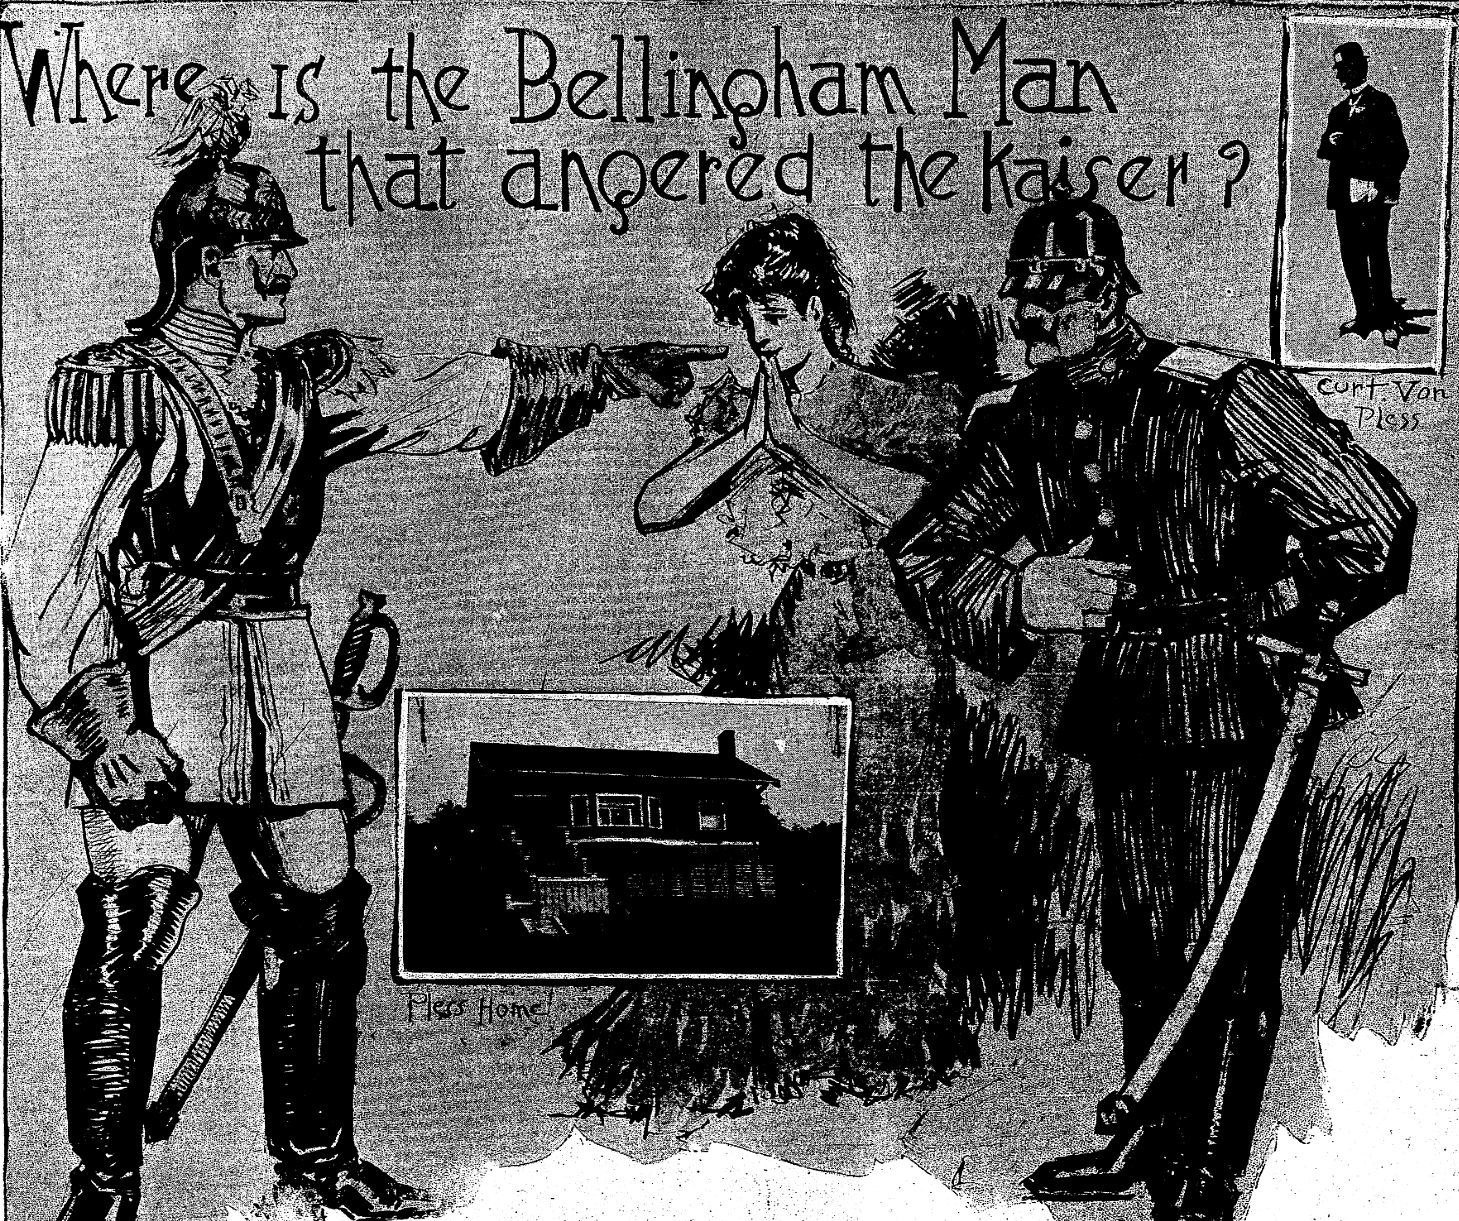 Seattle Daily Times, June 20, 1909